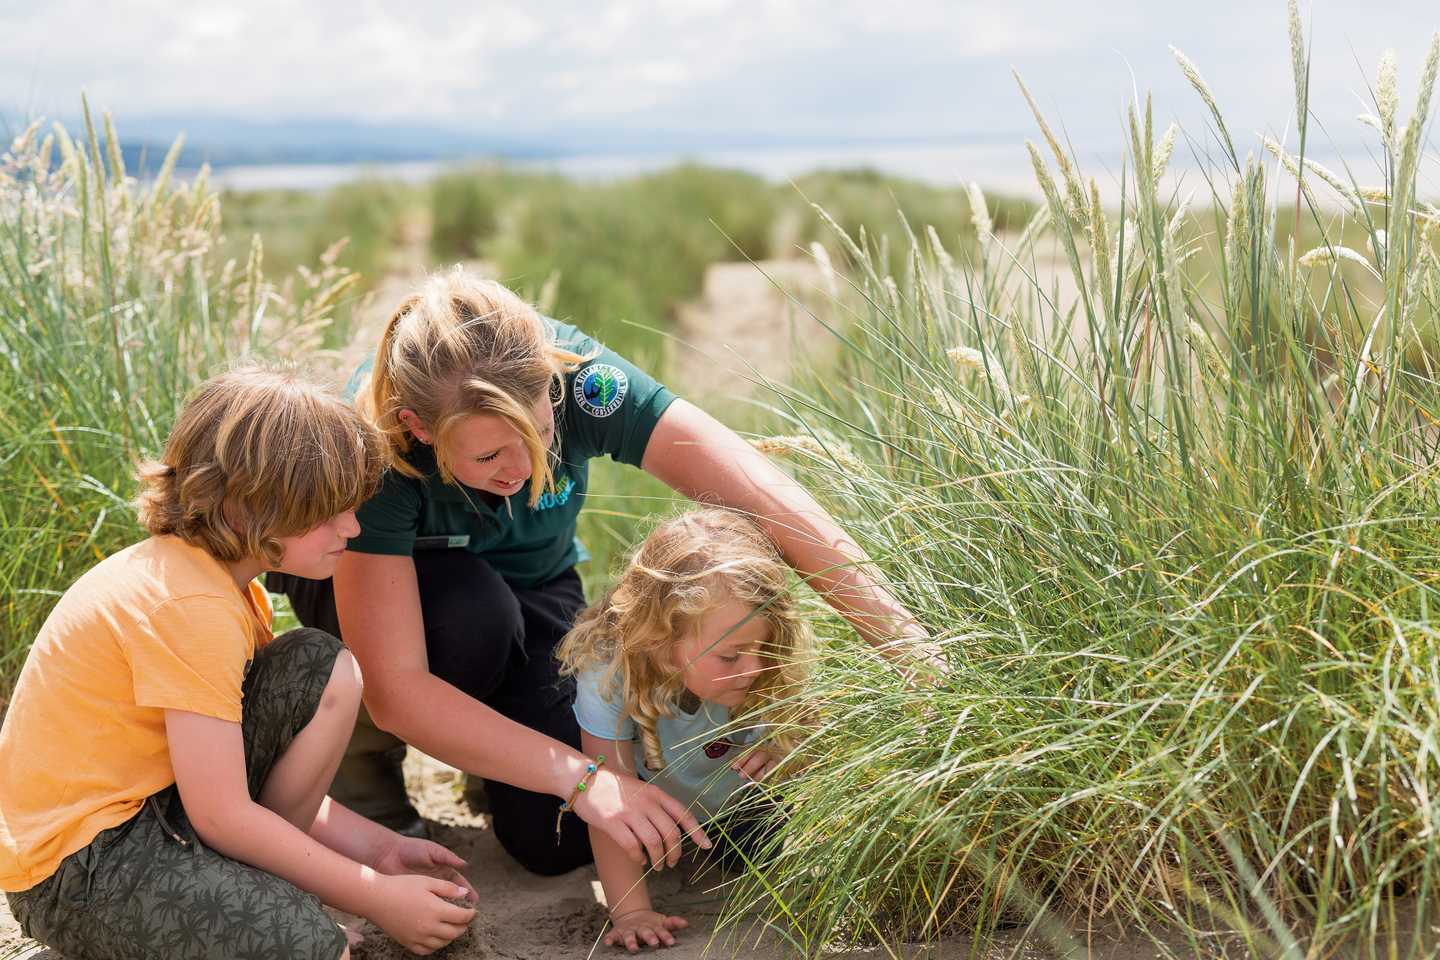 Family and Nature Rockz ranger examining wild grass in dunes